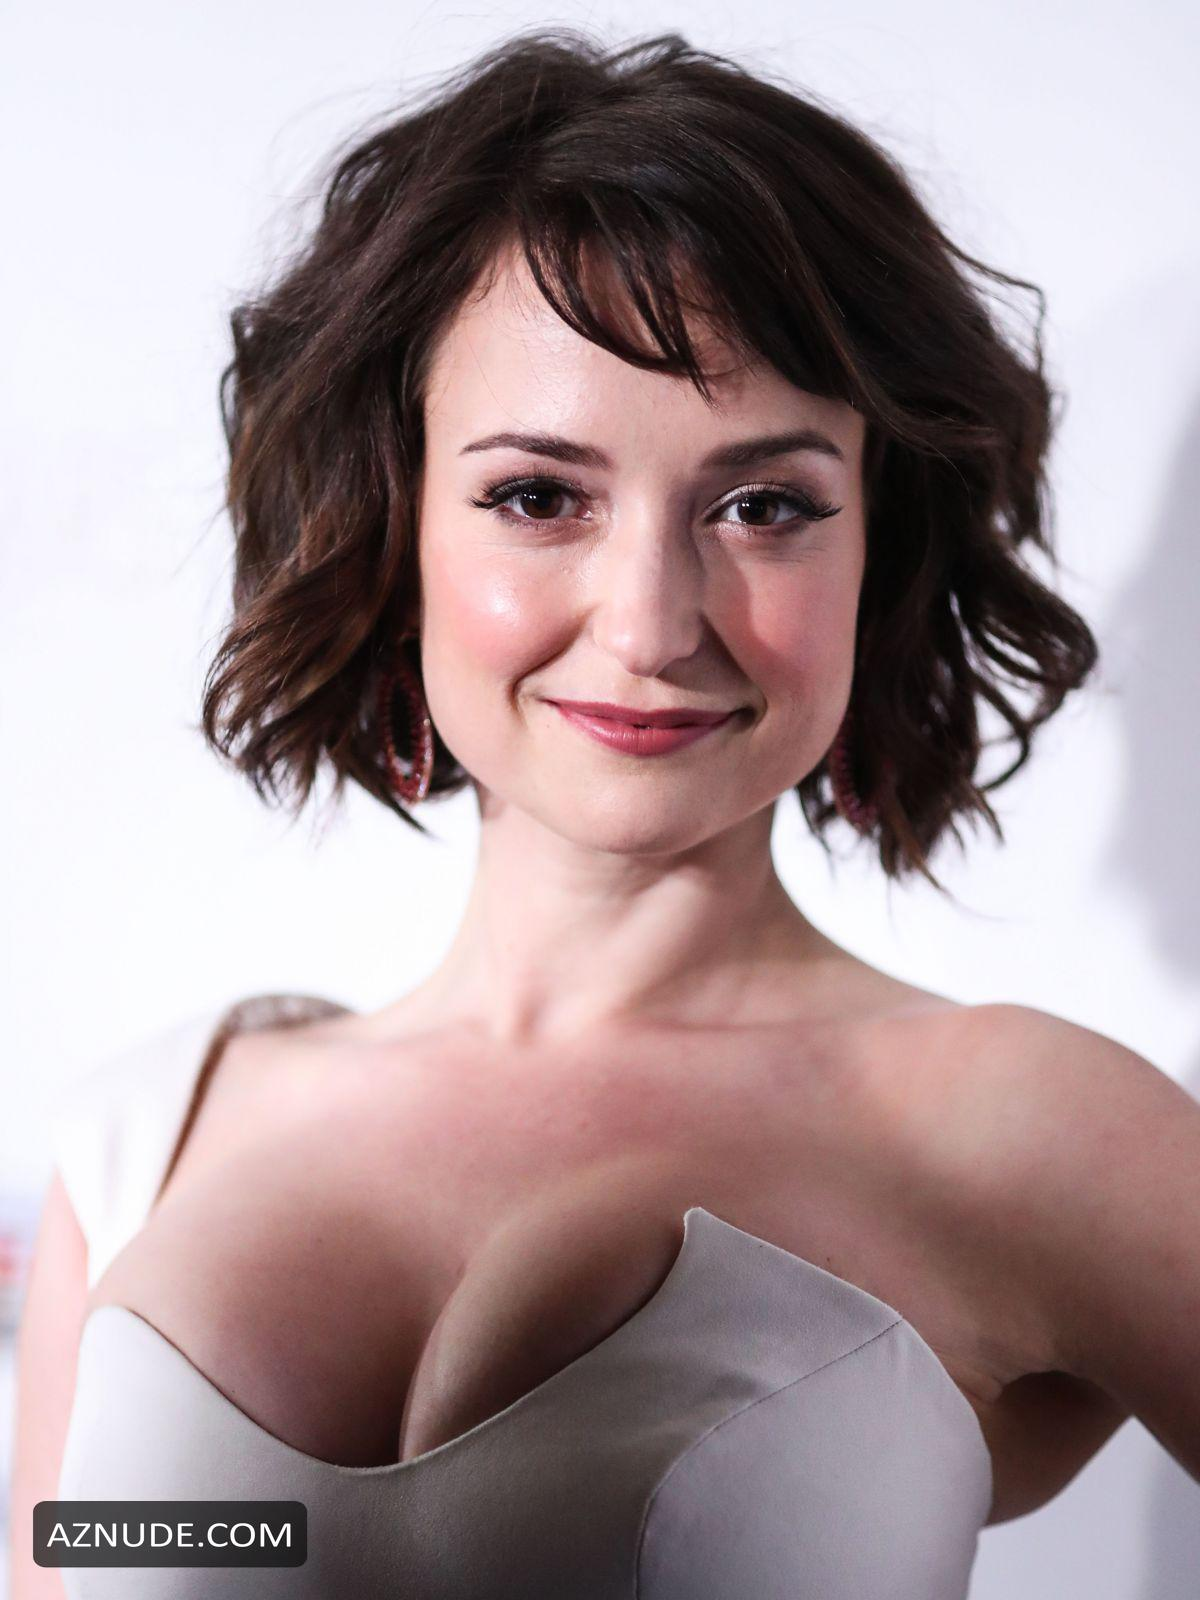 Naked Milana Vayntrub nudes (66 foto and video), Tits, Paparazzi, Feet, in bikini 2020